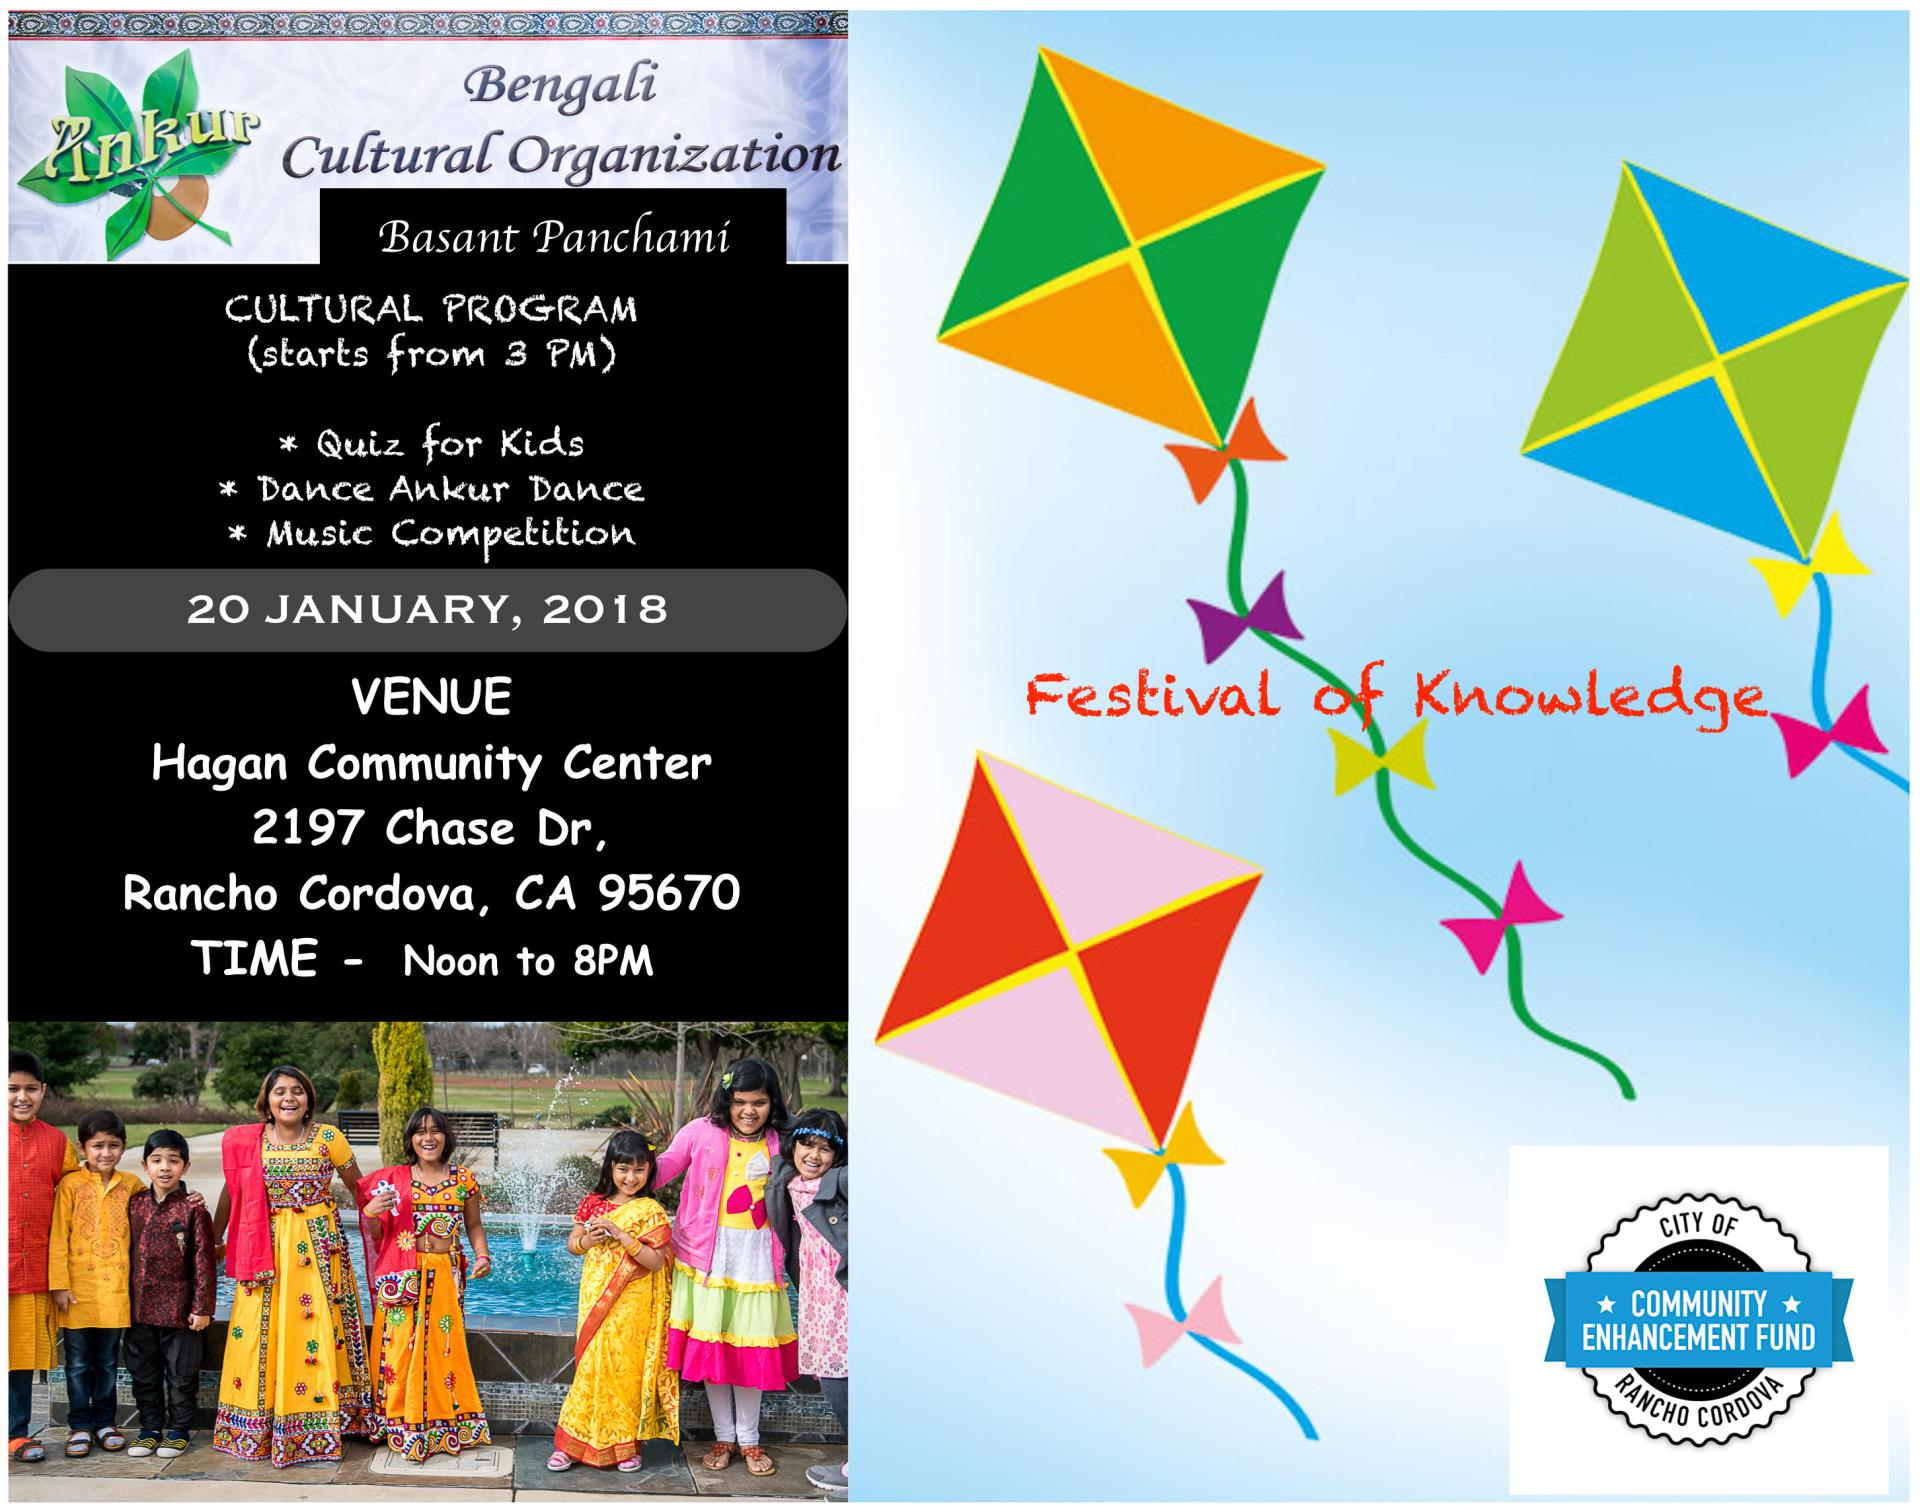 Festival of Knowledge flyer